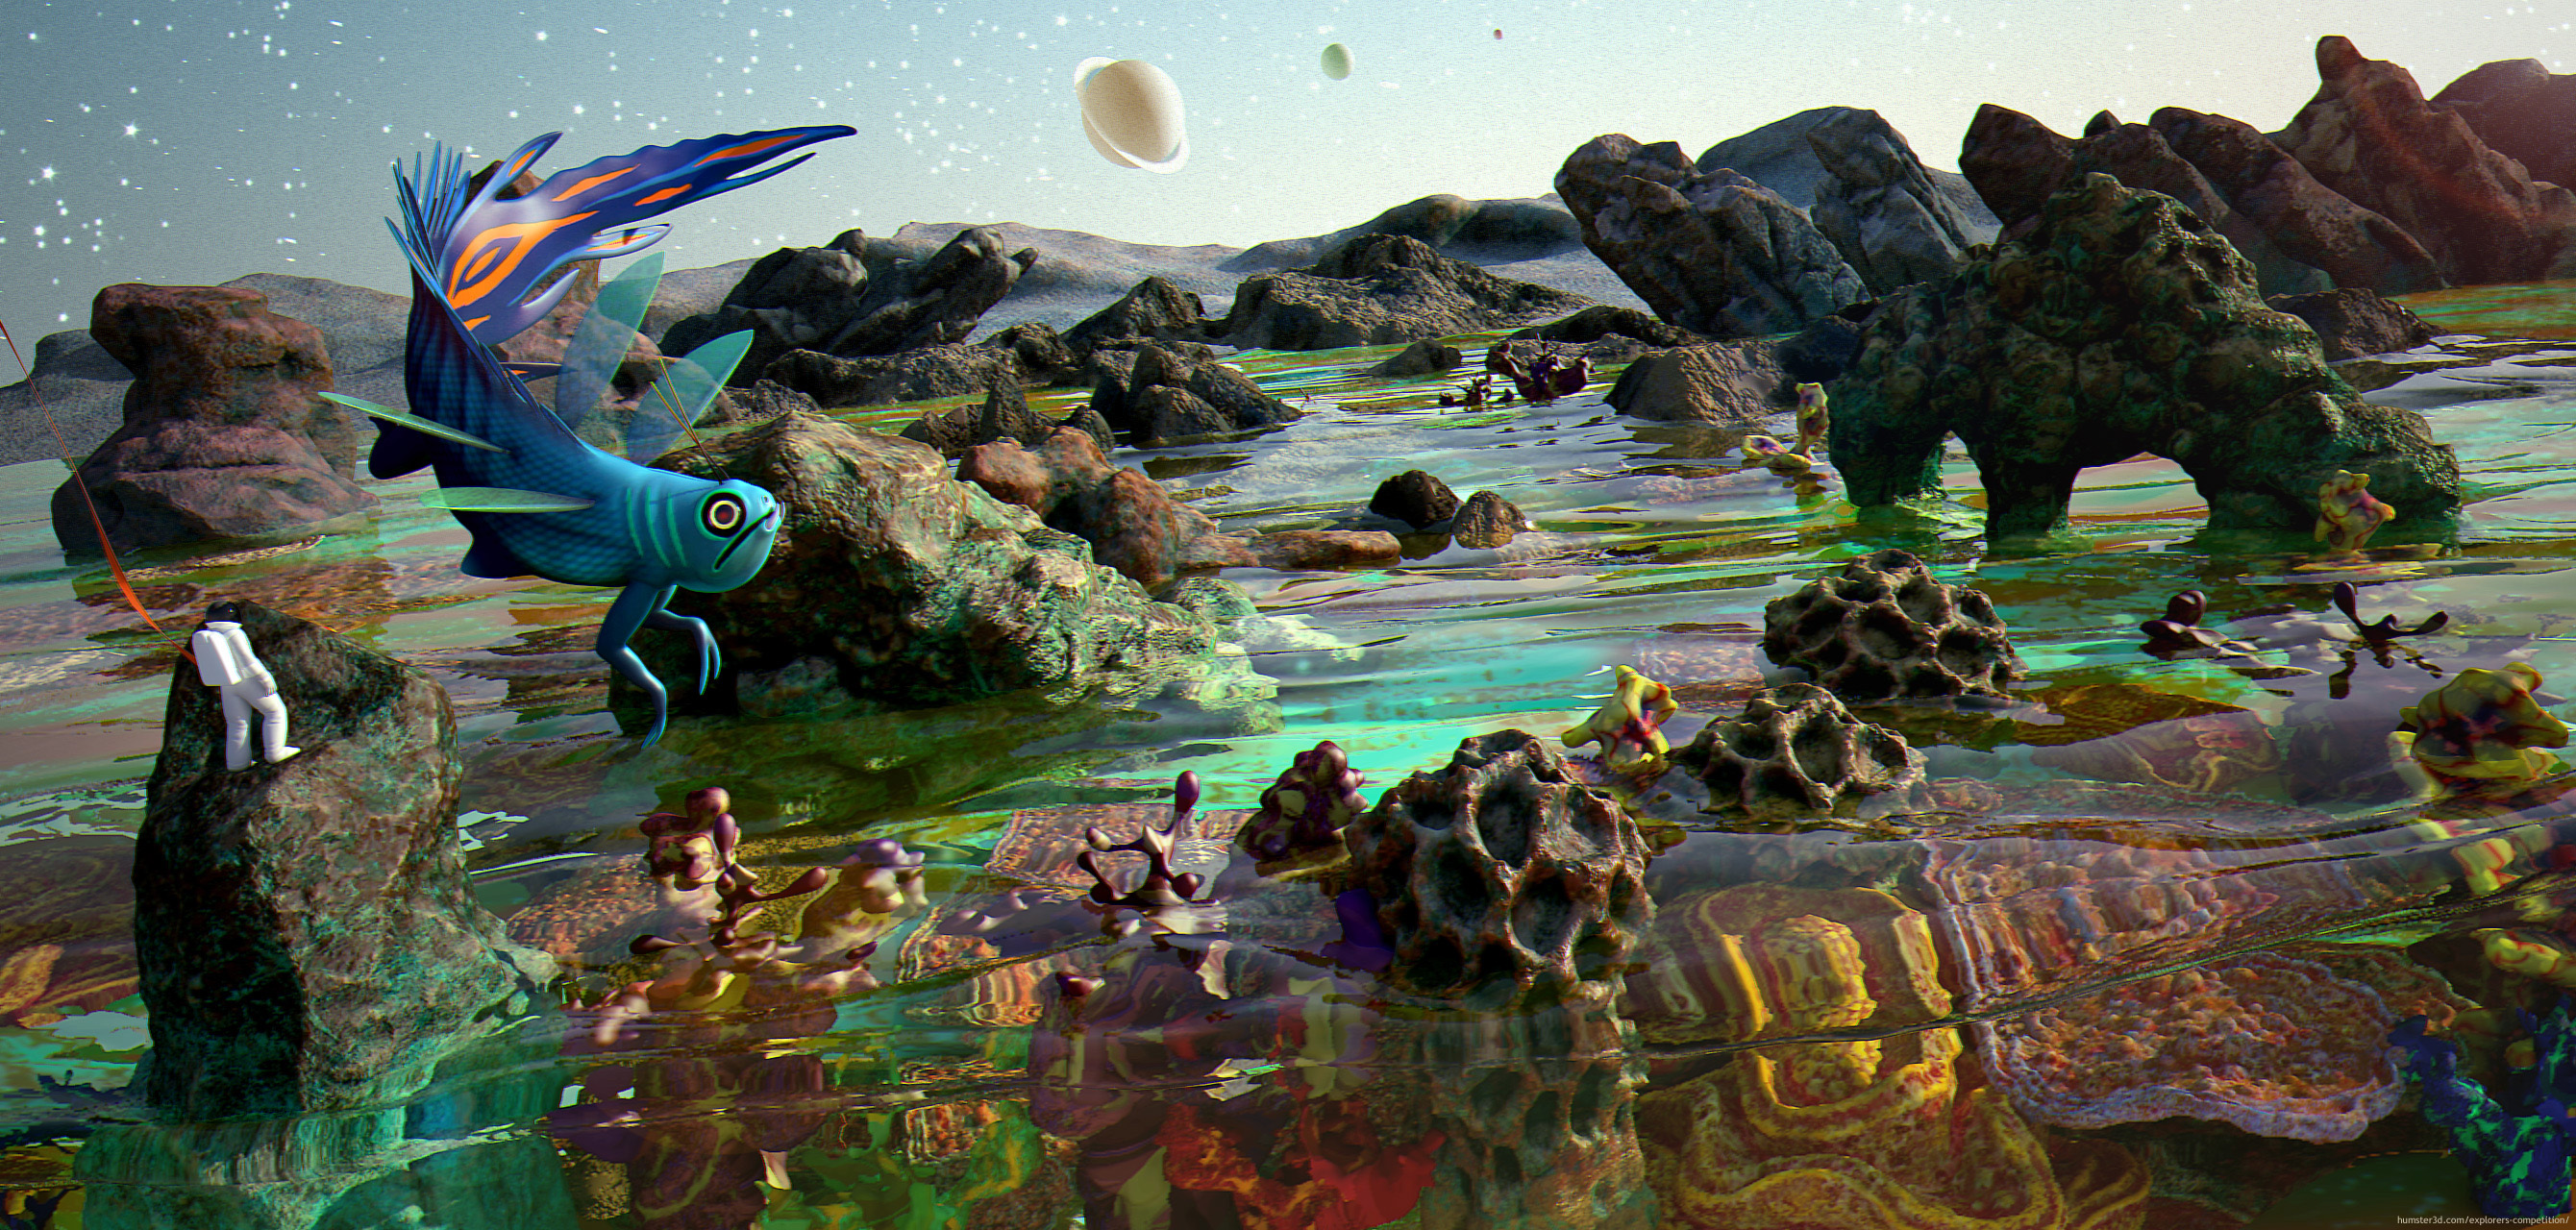 Exploring Kepler926 3d art